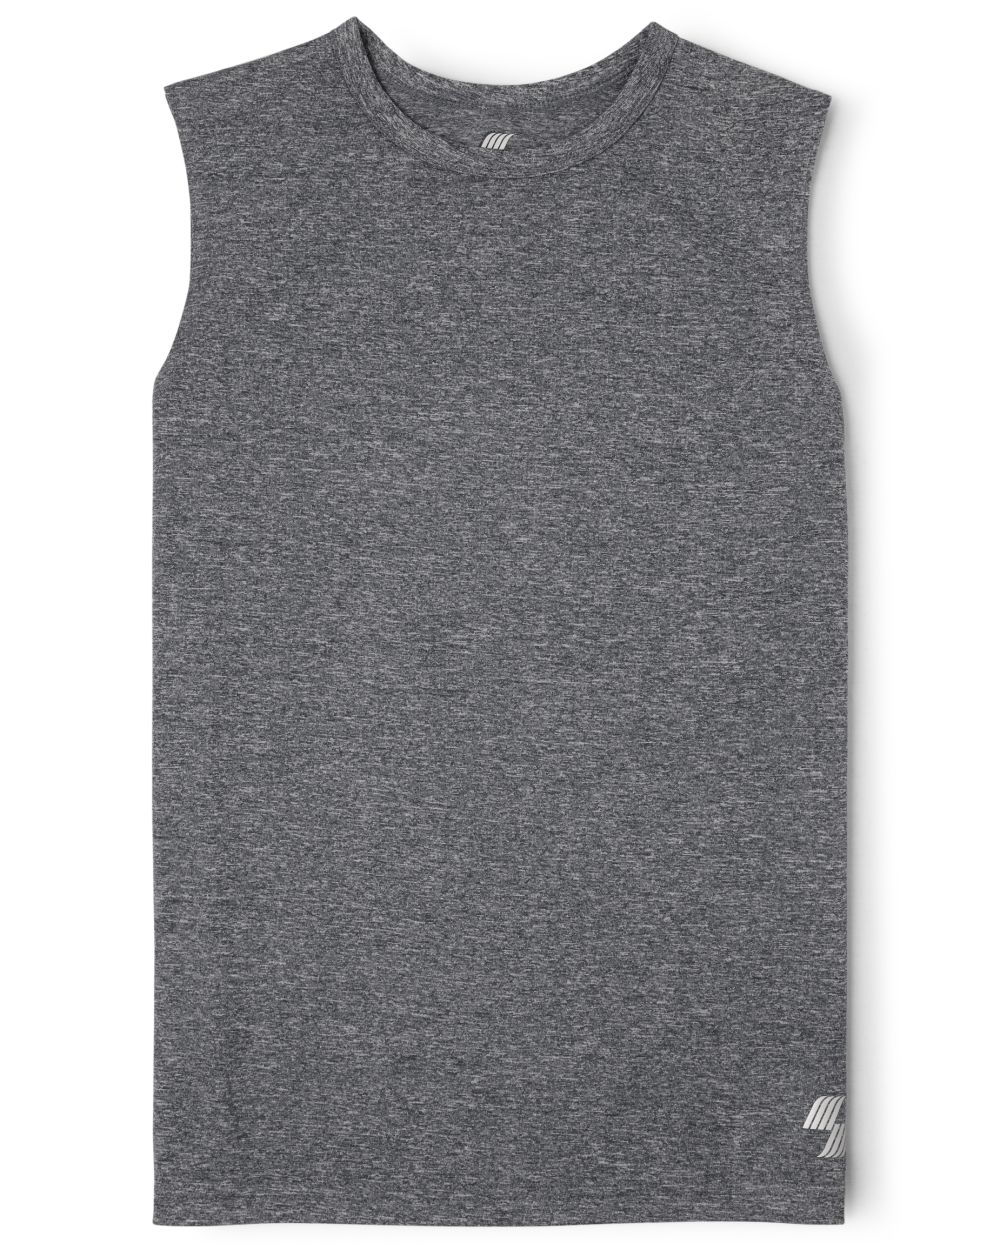 Boys Marled Muscle Tank Top